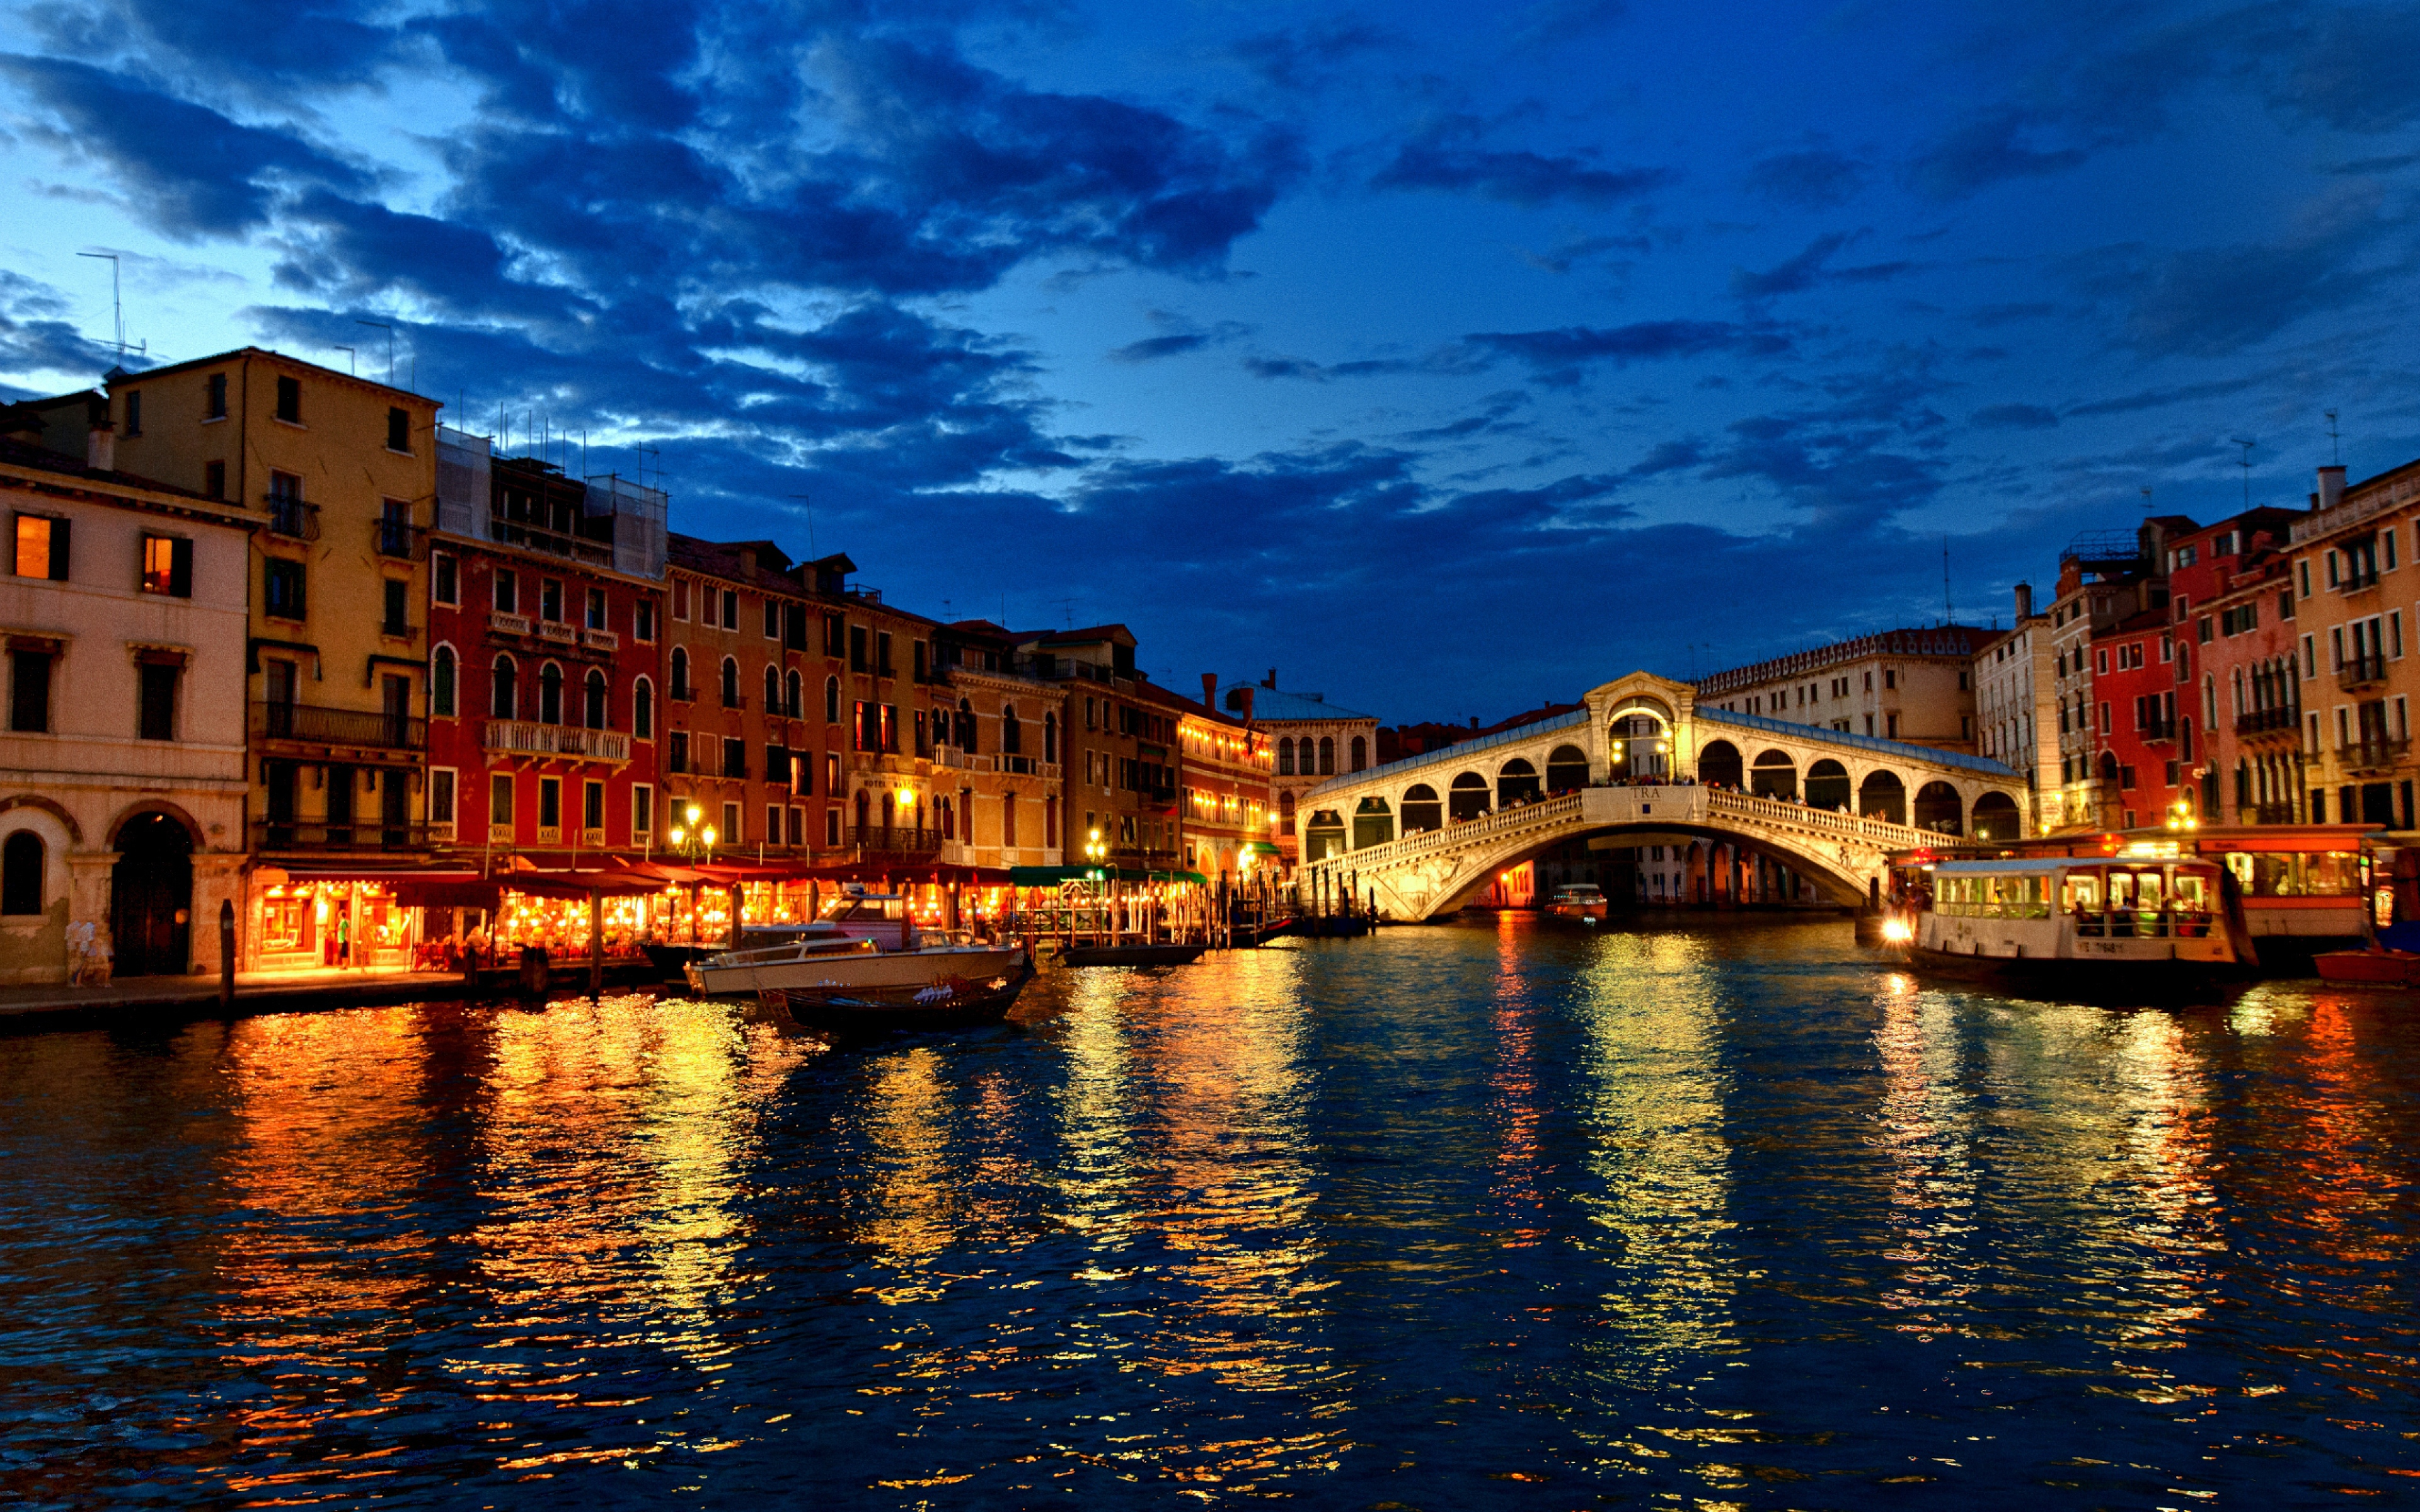 Venice Gondola At Night HD Wallpaper Background Images 3840x2400